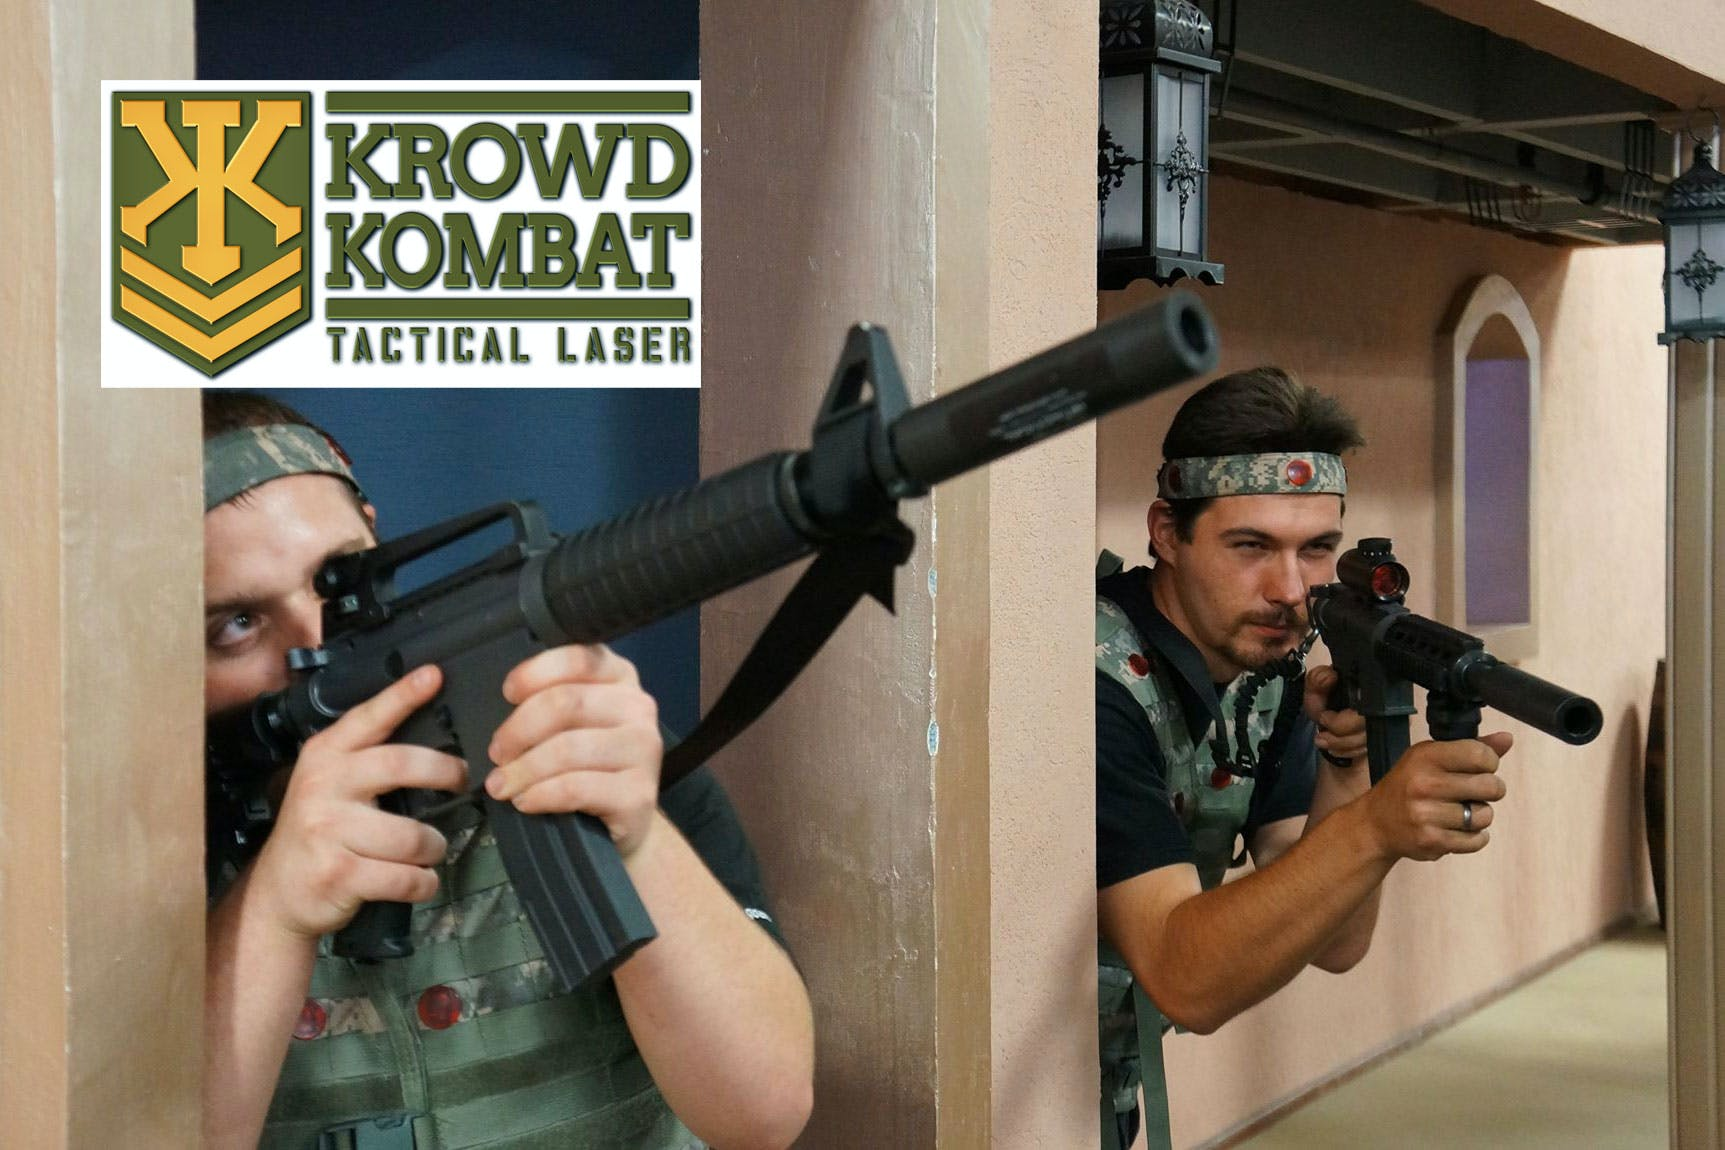 tactical-laser-tag-krowd-kombat-coming-soon-to-Katy-texas